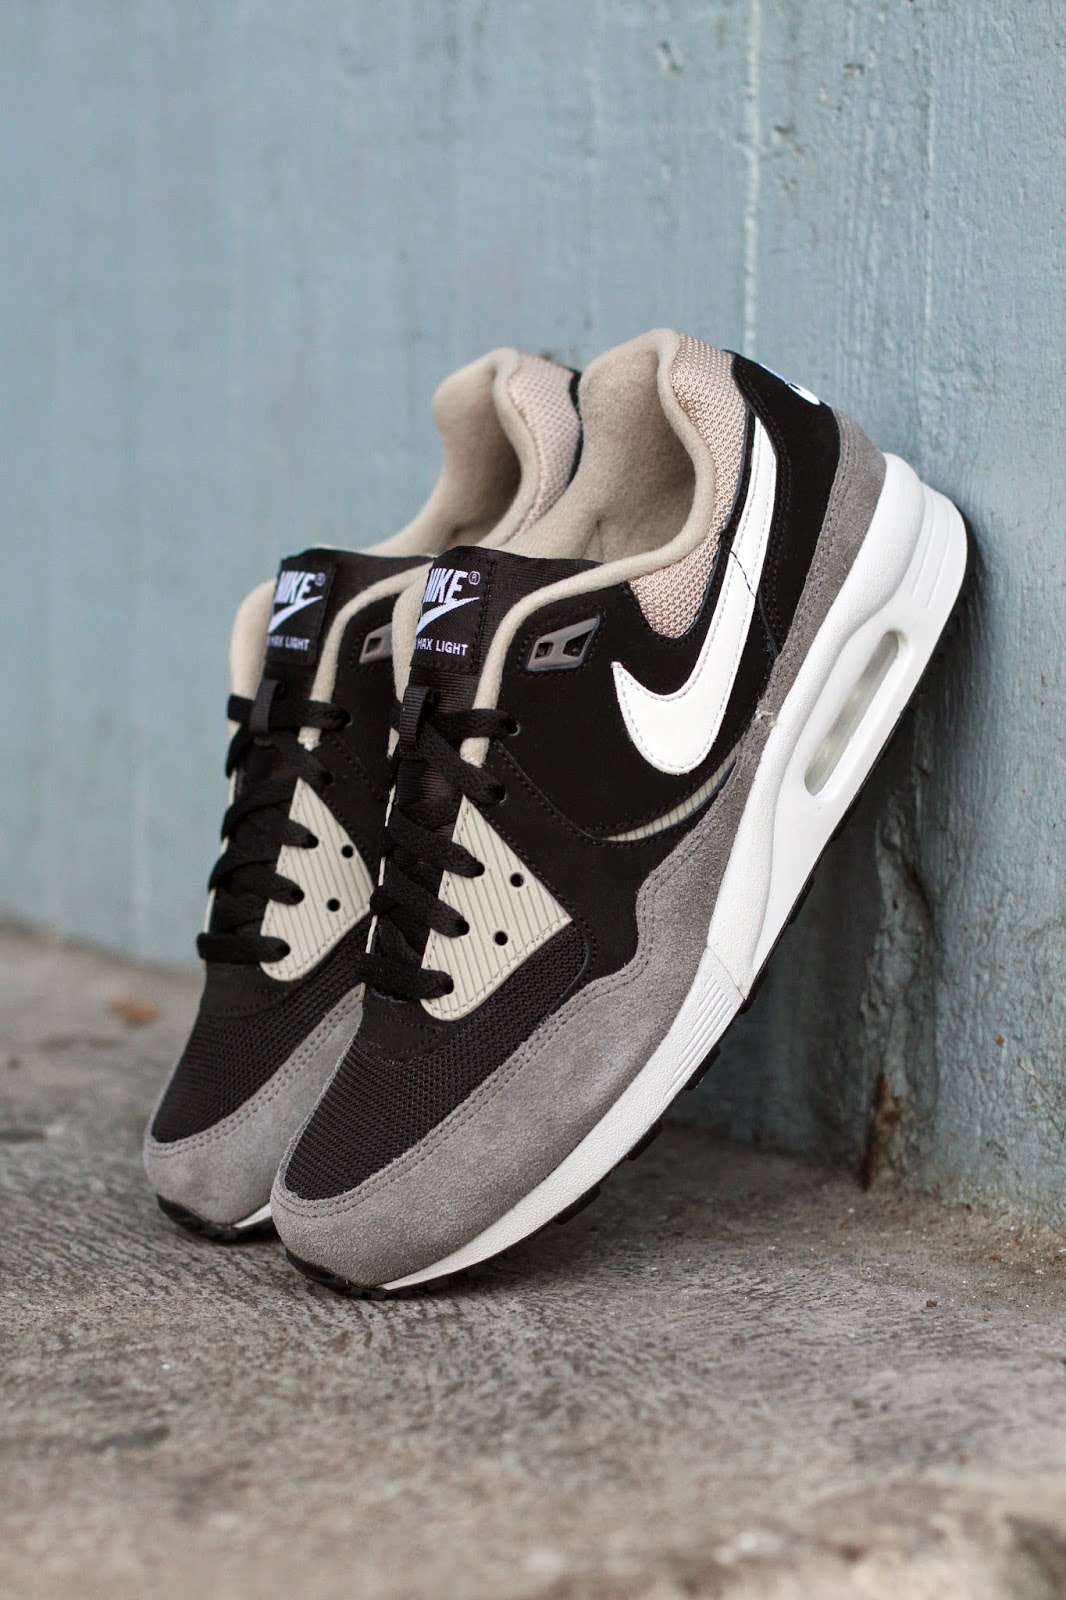 http://www.footish.se/sneakers/nike-air-max-light-essential-7